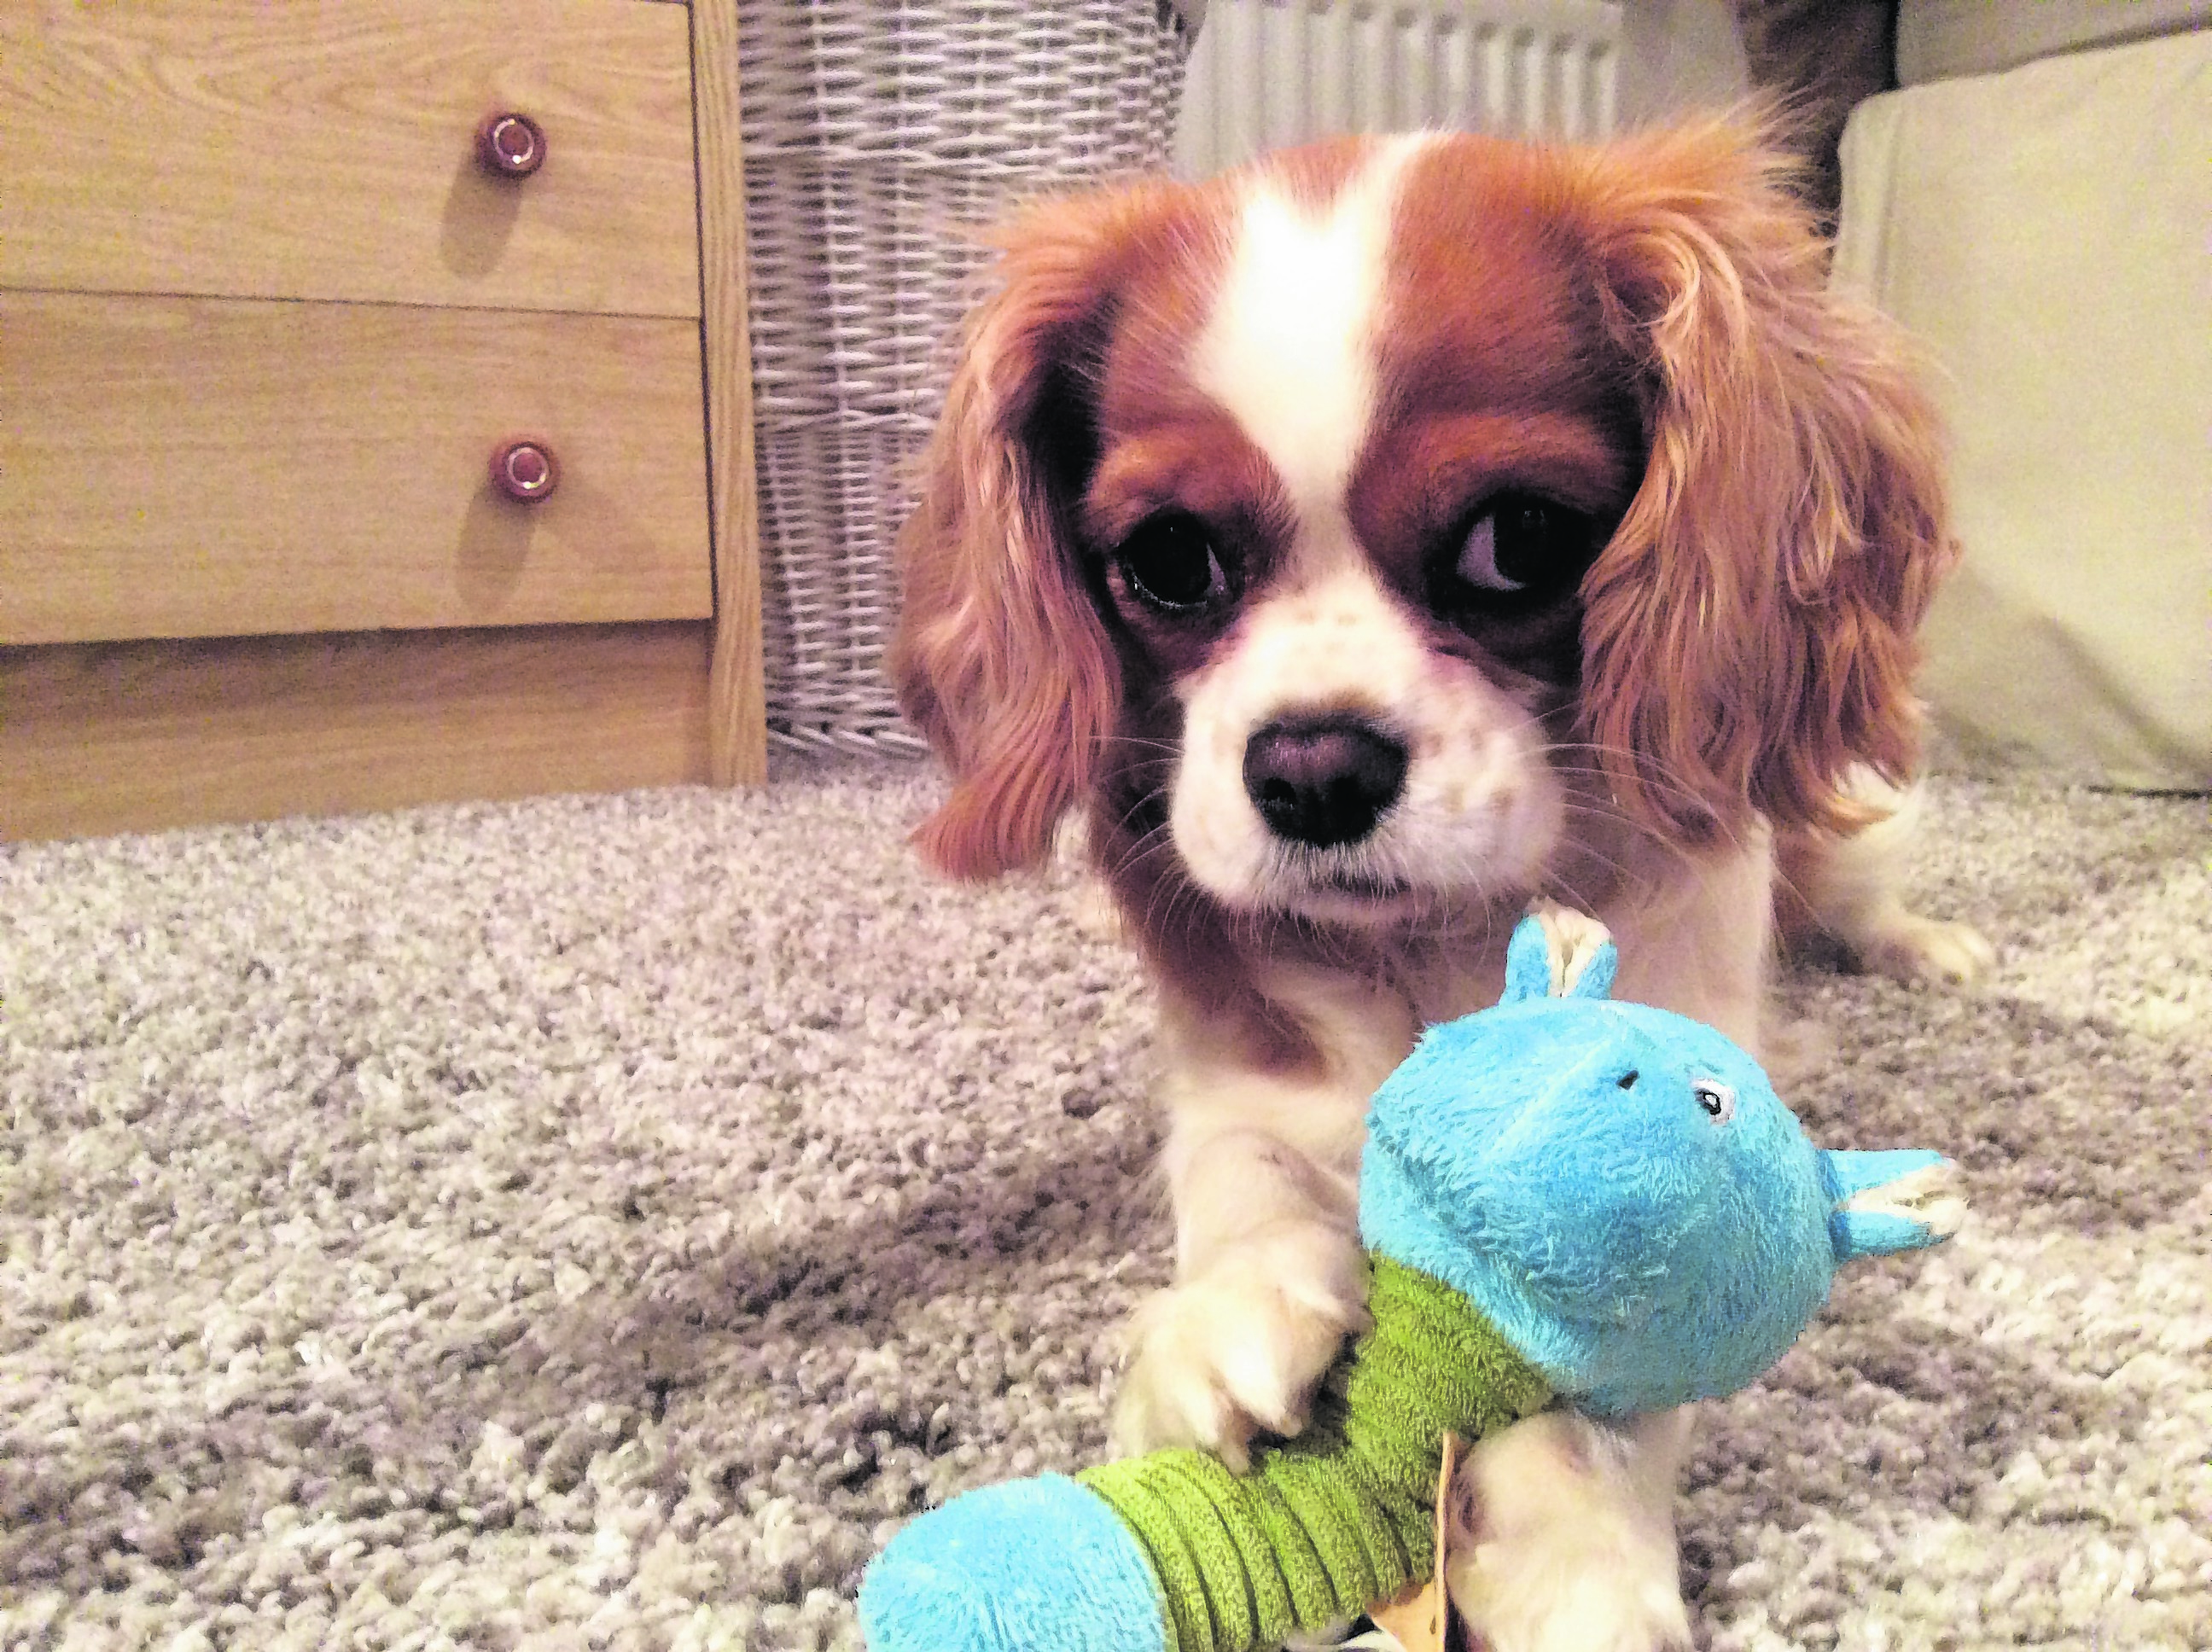 This is Bella, the cavalier King Charles spaniel. She lives with Karen in Cove